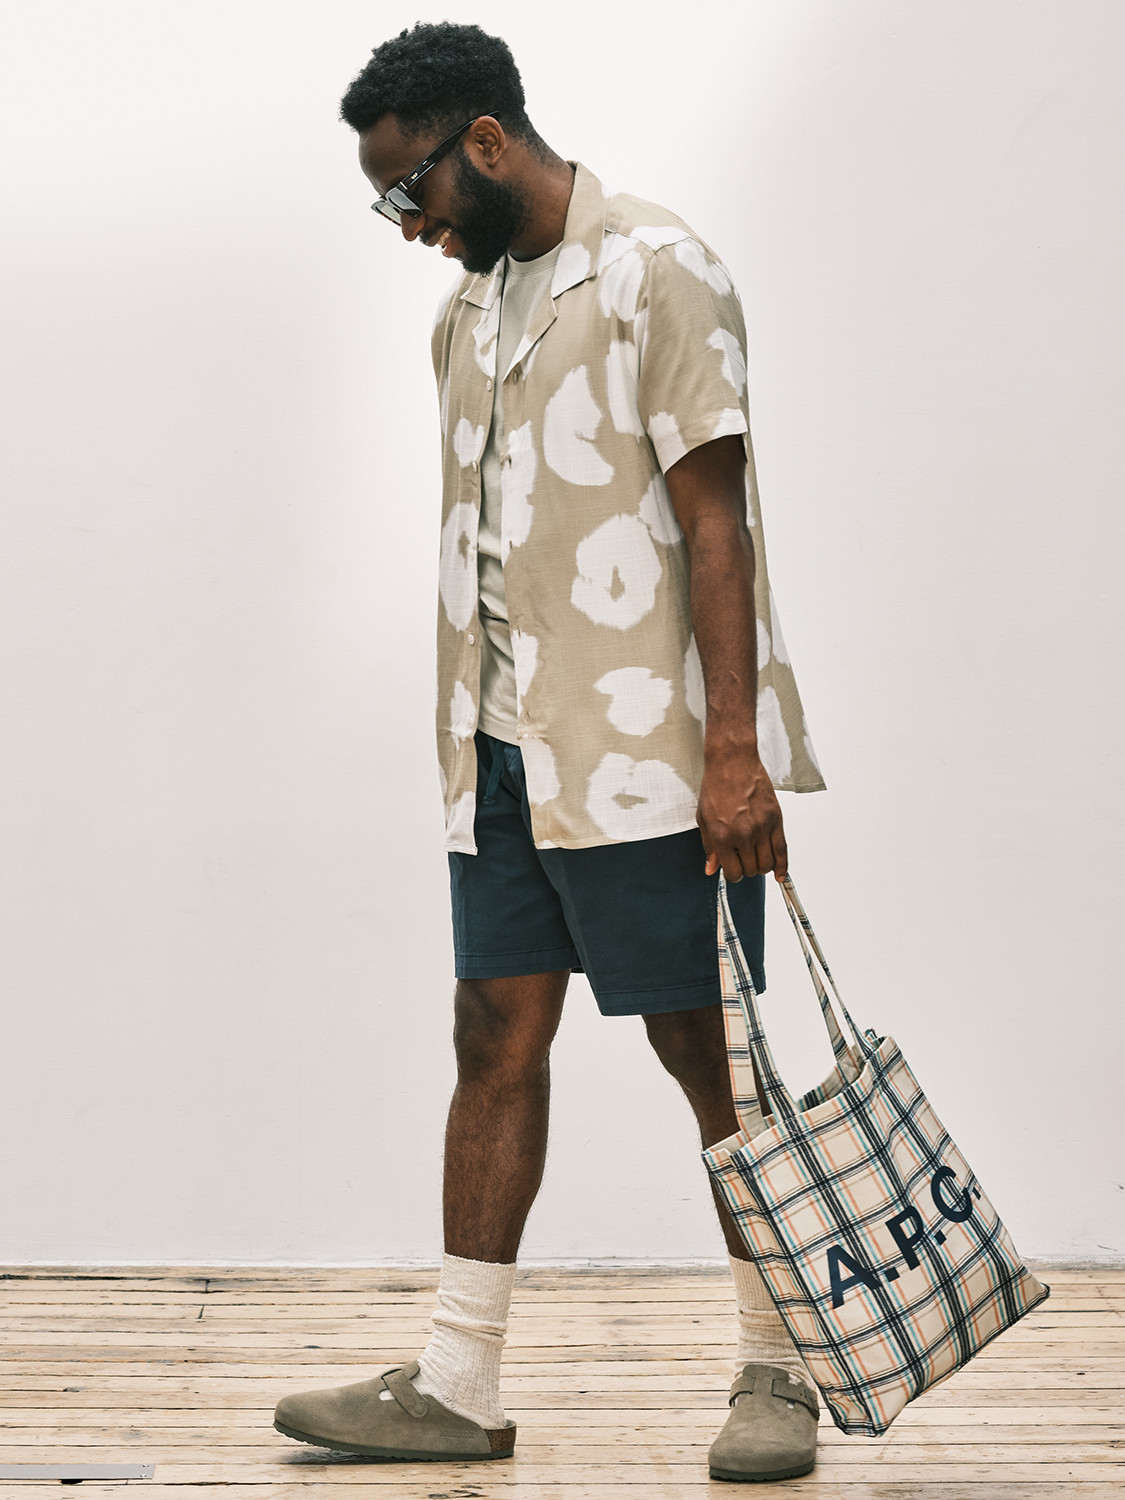 Men's outfit idea for 2021 with neutral short-sleeved patterned shirt, neutral plain crew neck t-shirt, navy shorts, neutral tote bag, neutral sandals. Suitable for summer.